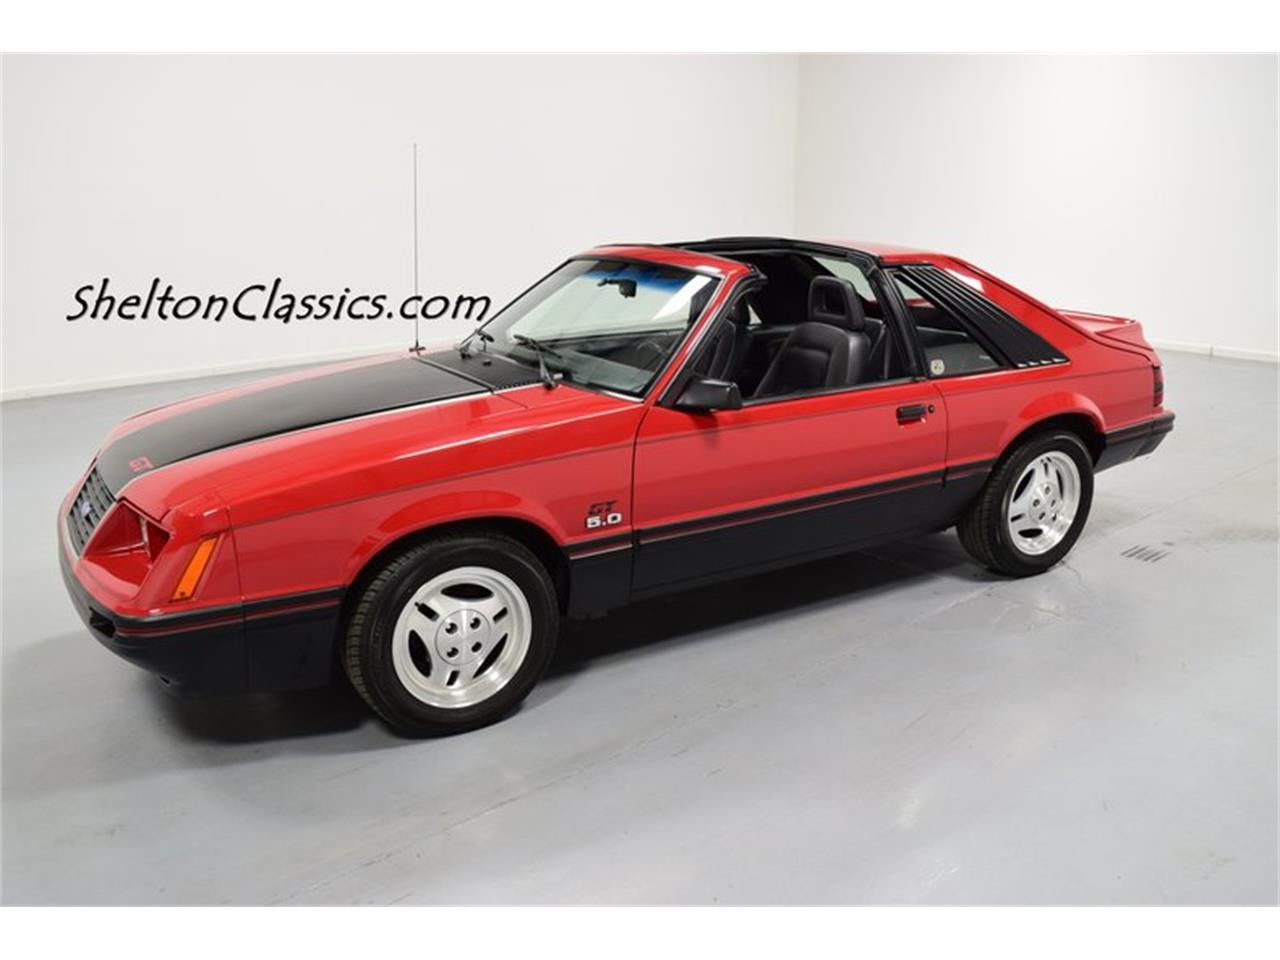 For Sale: 1984 Ford Mustang in Mooresville, North Carolina